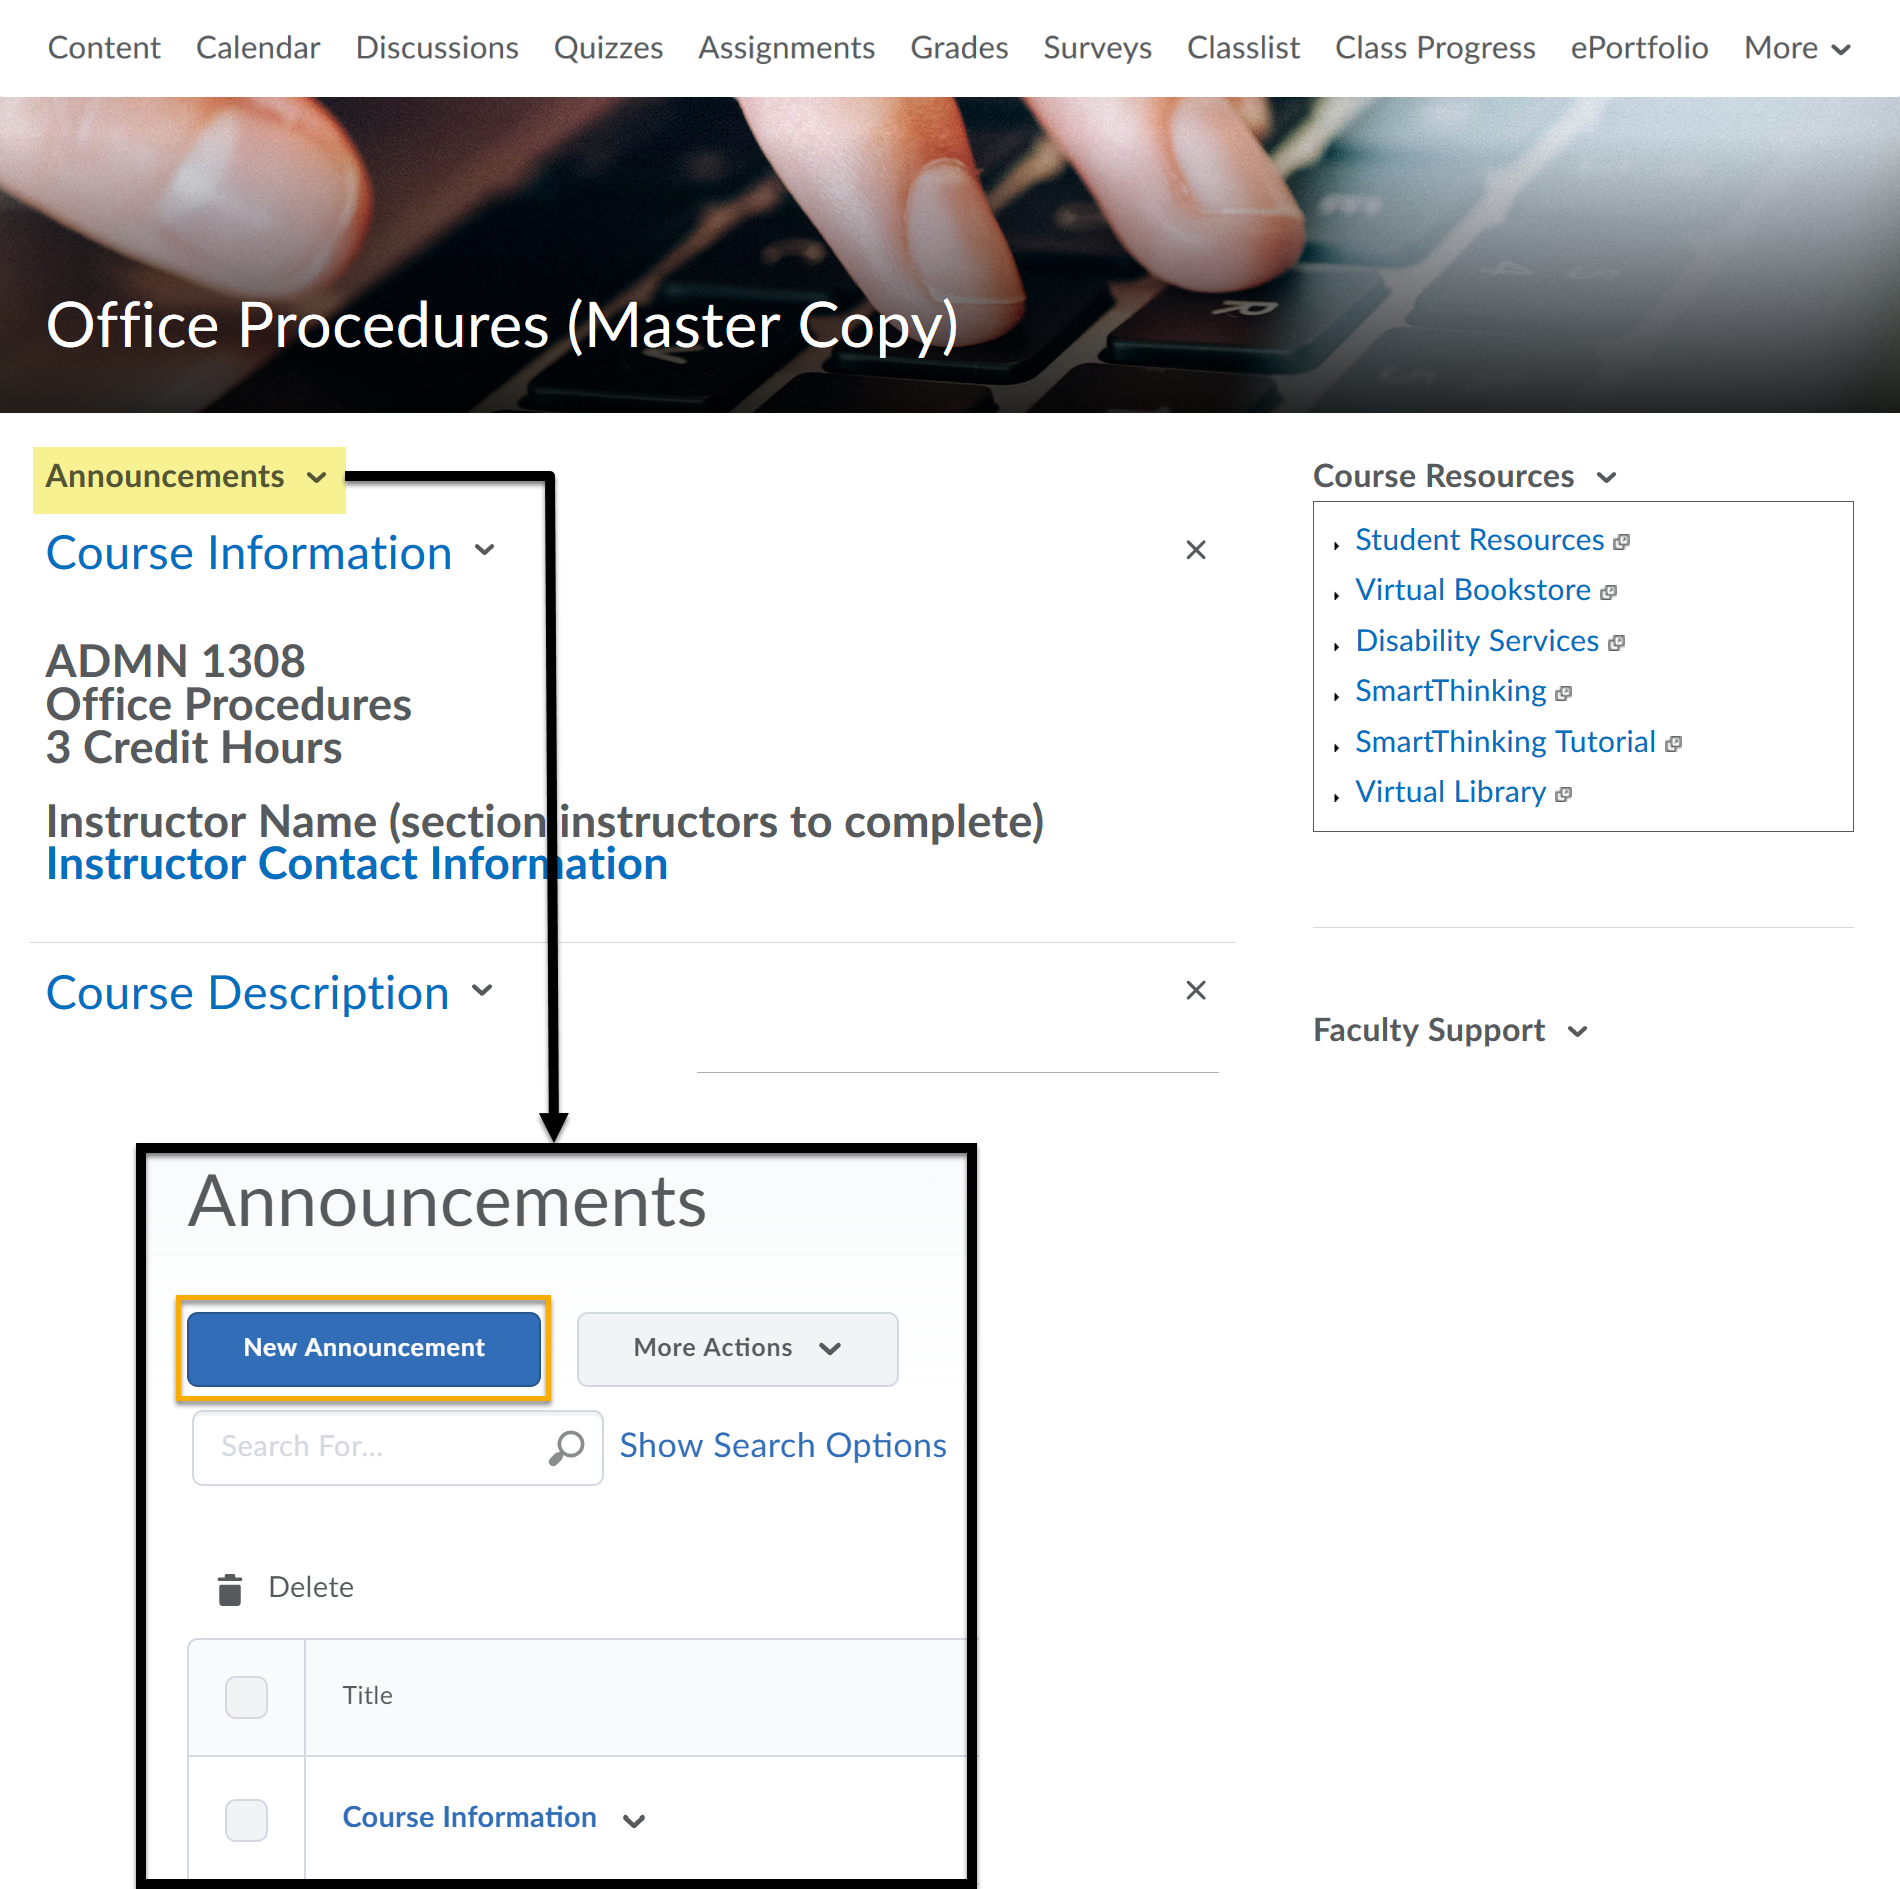 Announcements highlighted on the course page. Opens New Announcements window. New Announcement selected.